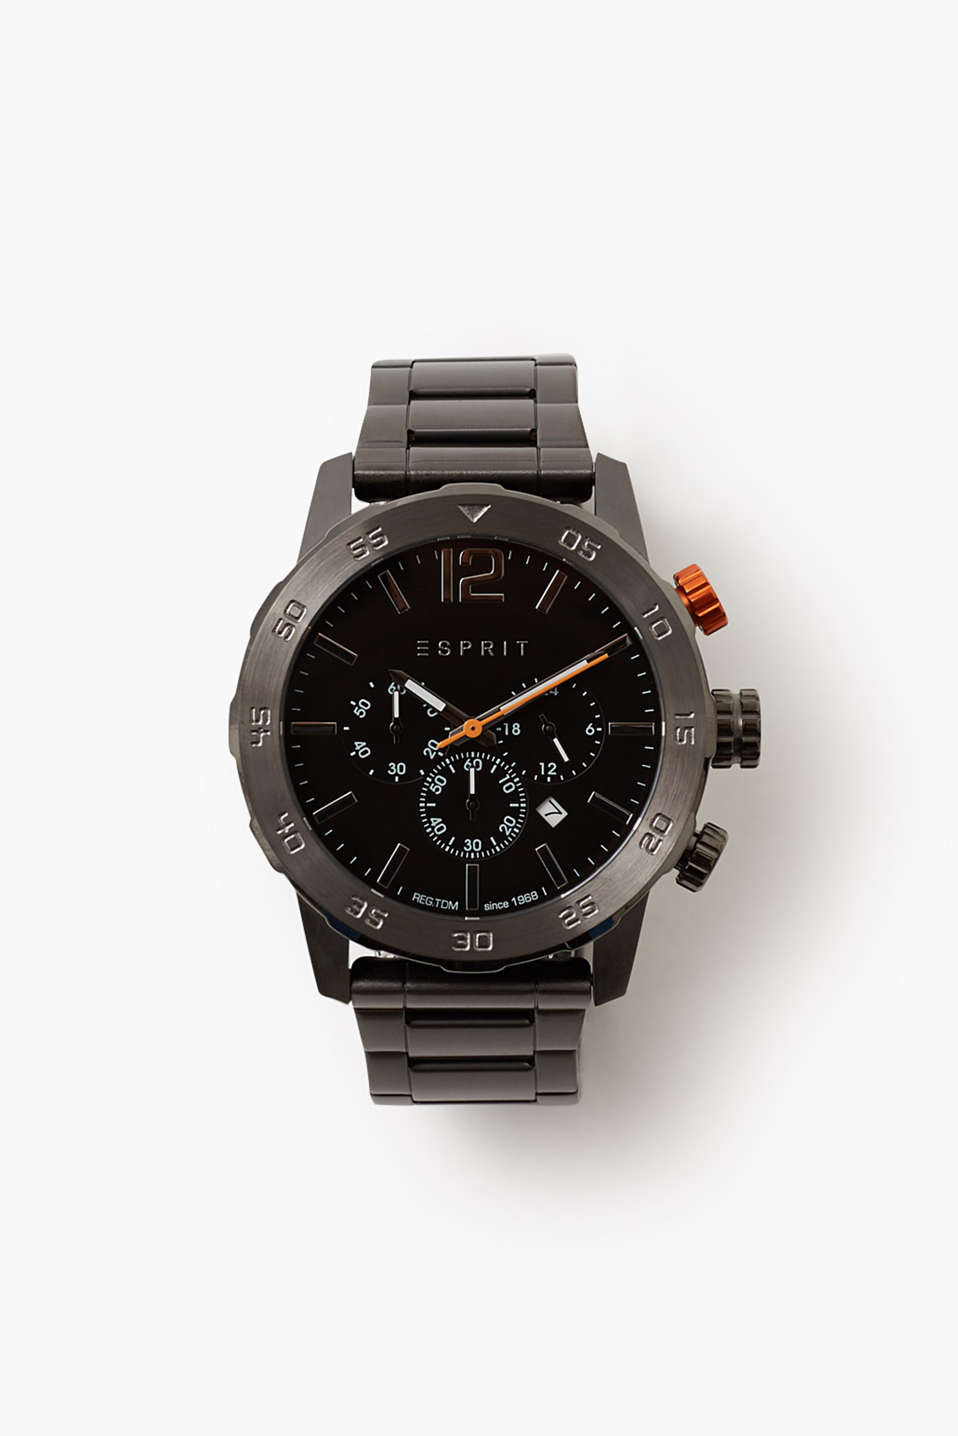 With a large casing and striking colours: dark chrono with a stopwatch function and 24 hour hand, Ø approx. 48 mm